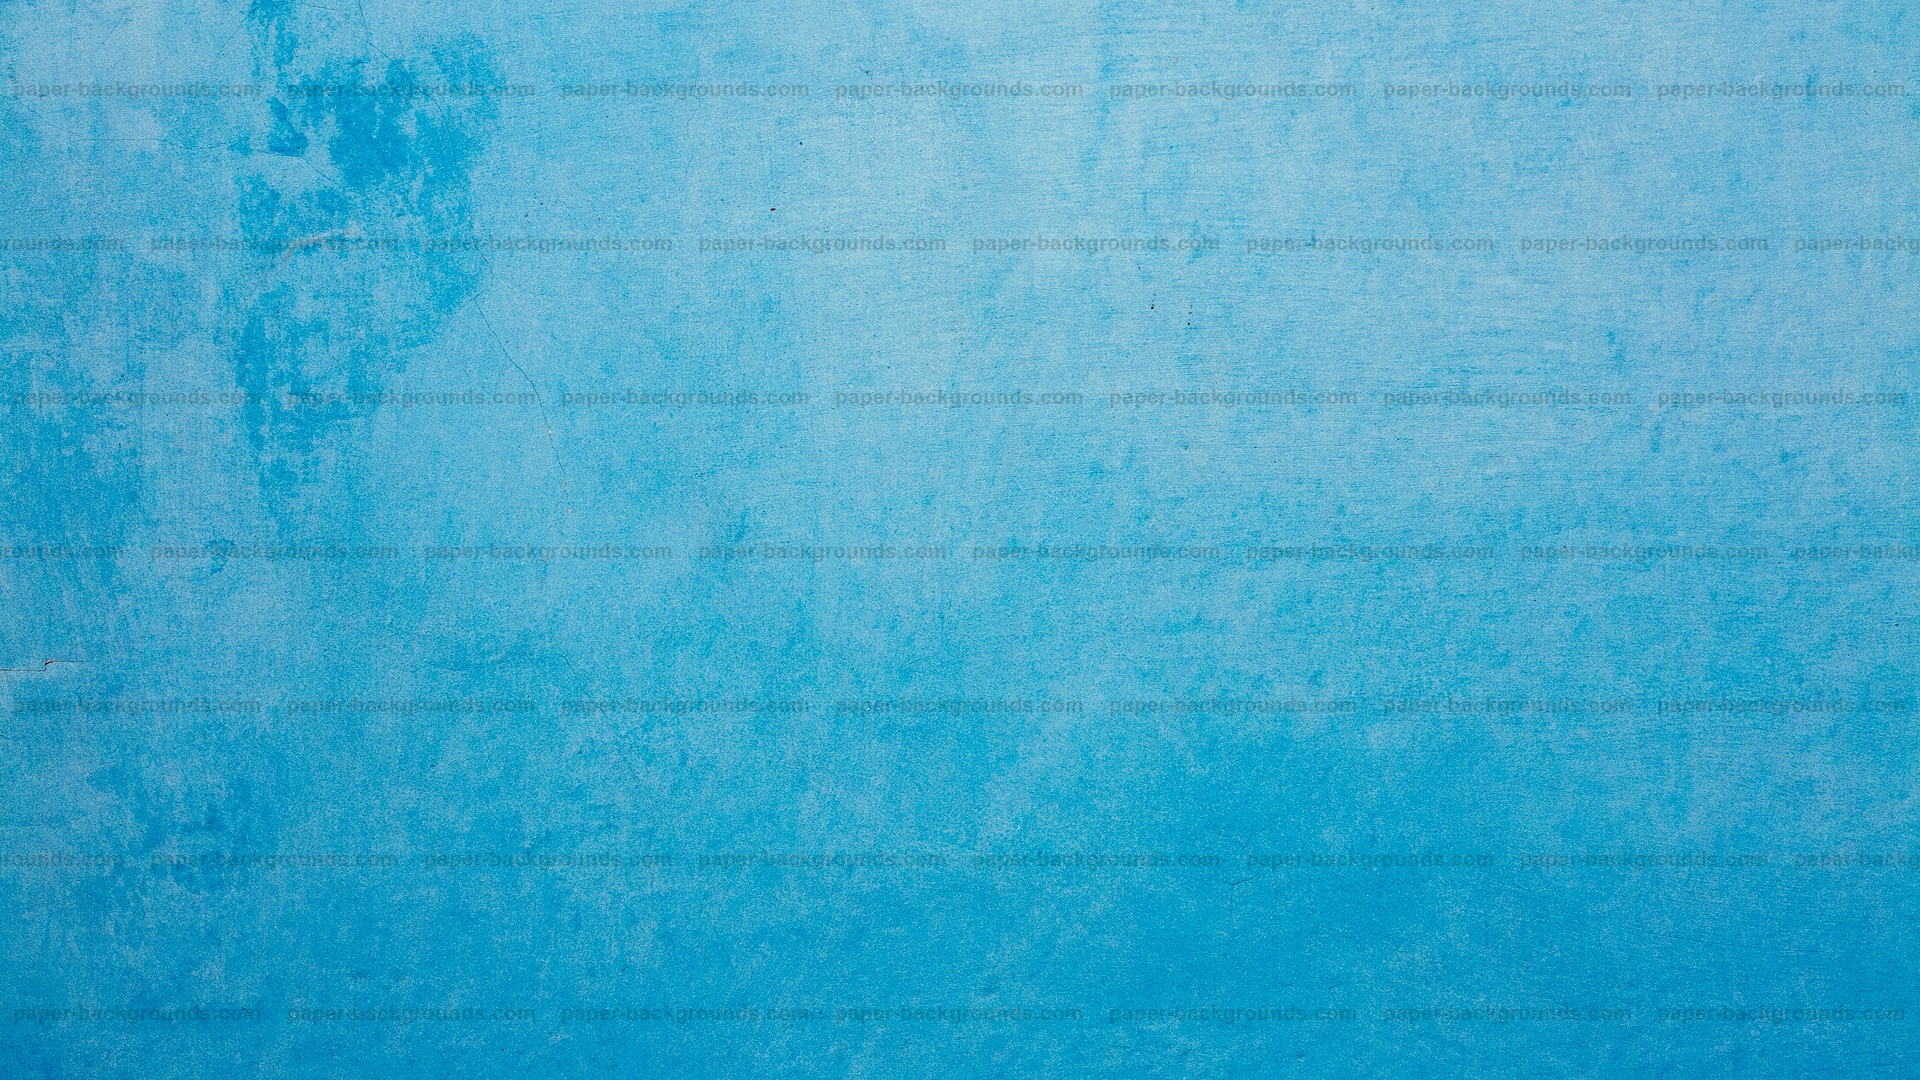 Blue Background Images WallpaperSafari